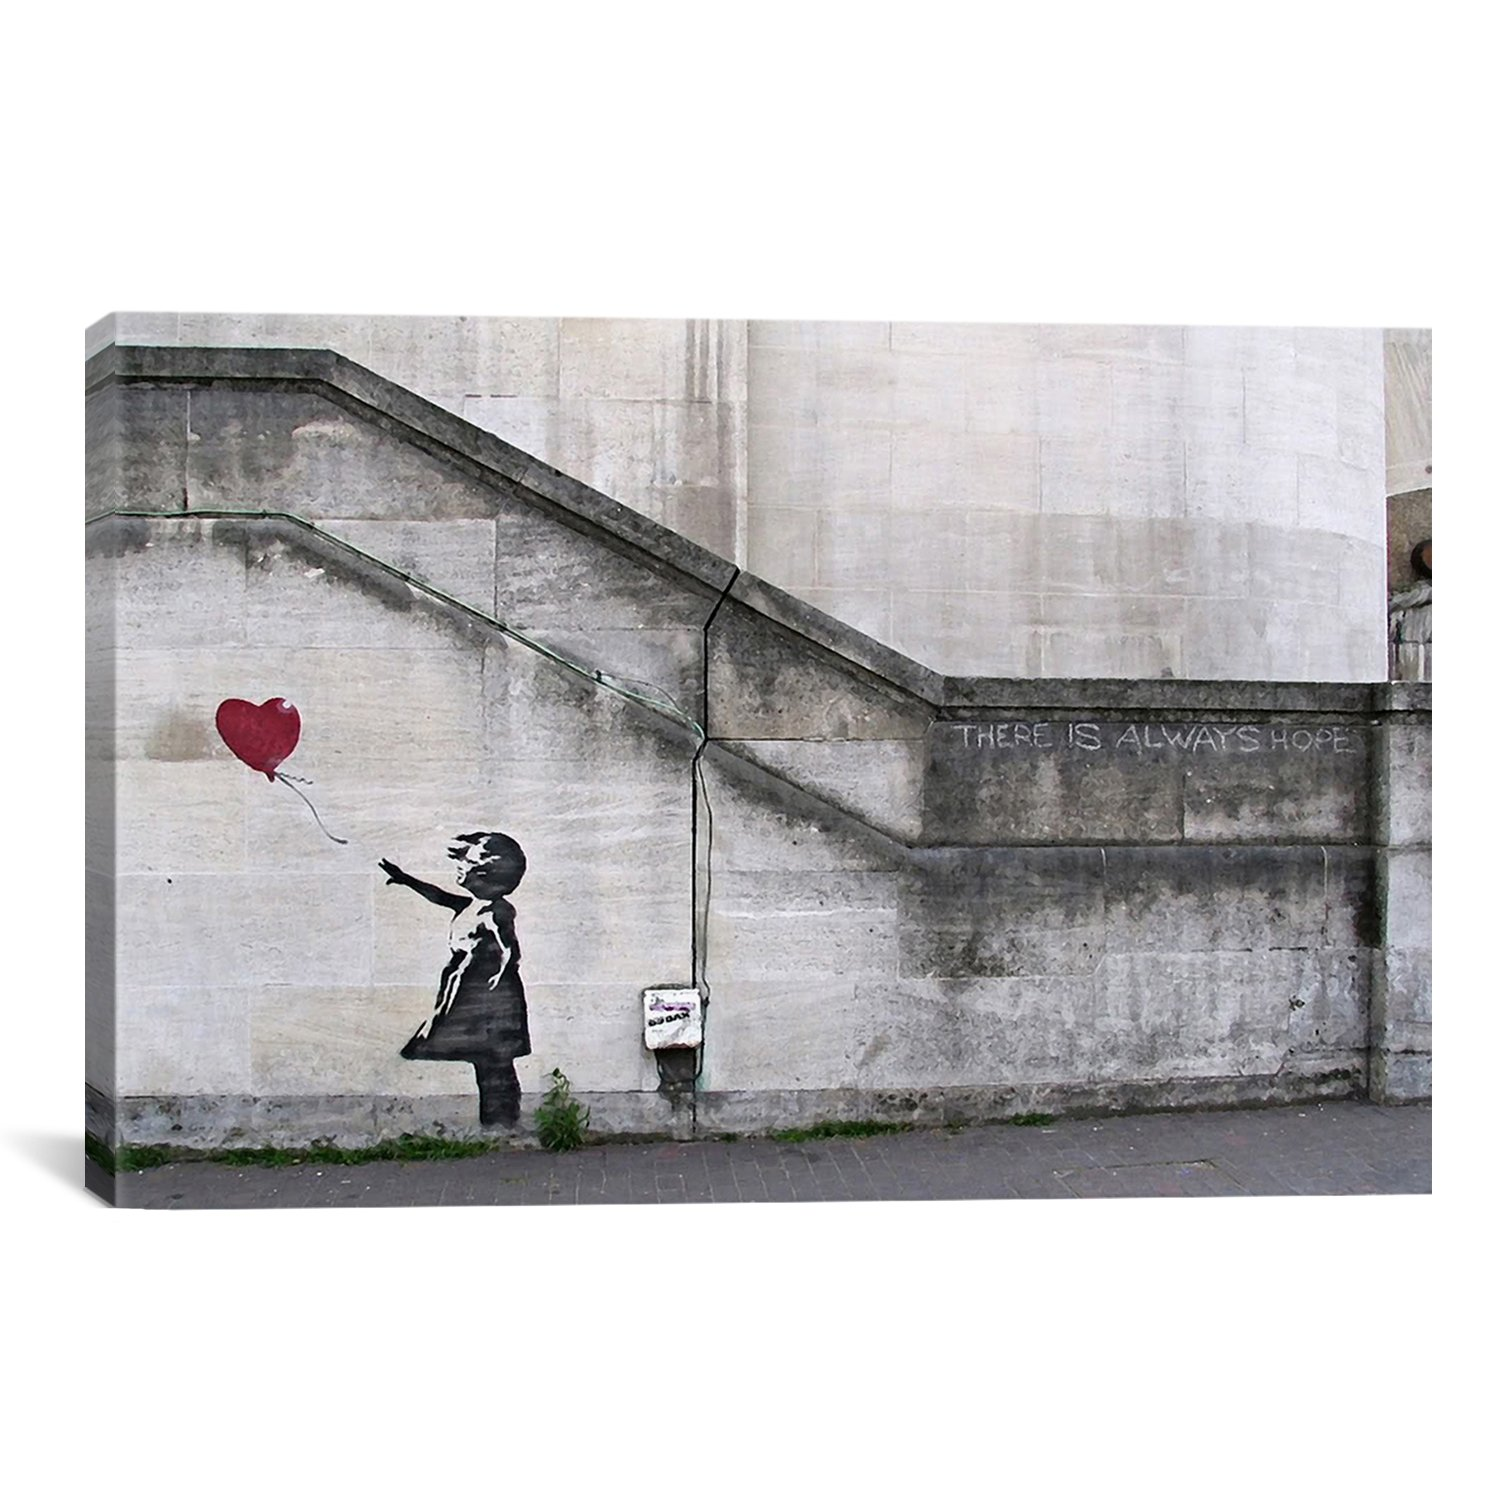 Amazon.com: iCanvasART There is Always Hope Balloon Girl by Banksy ...